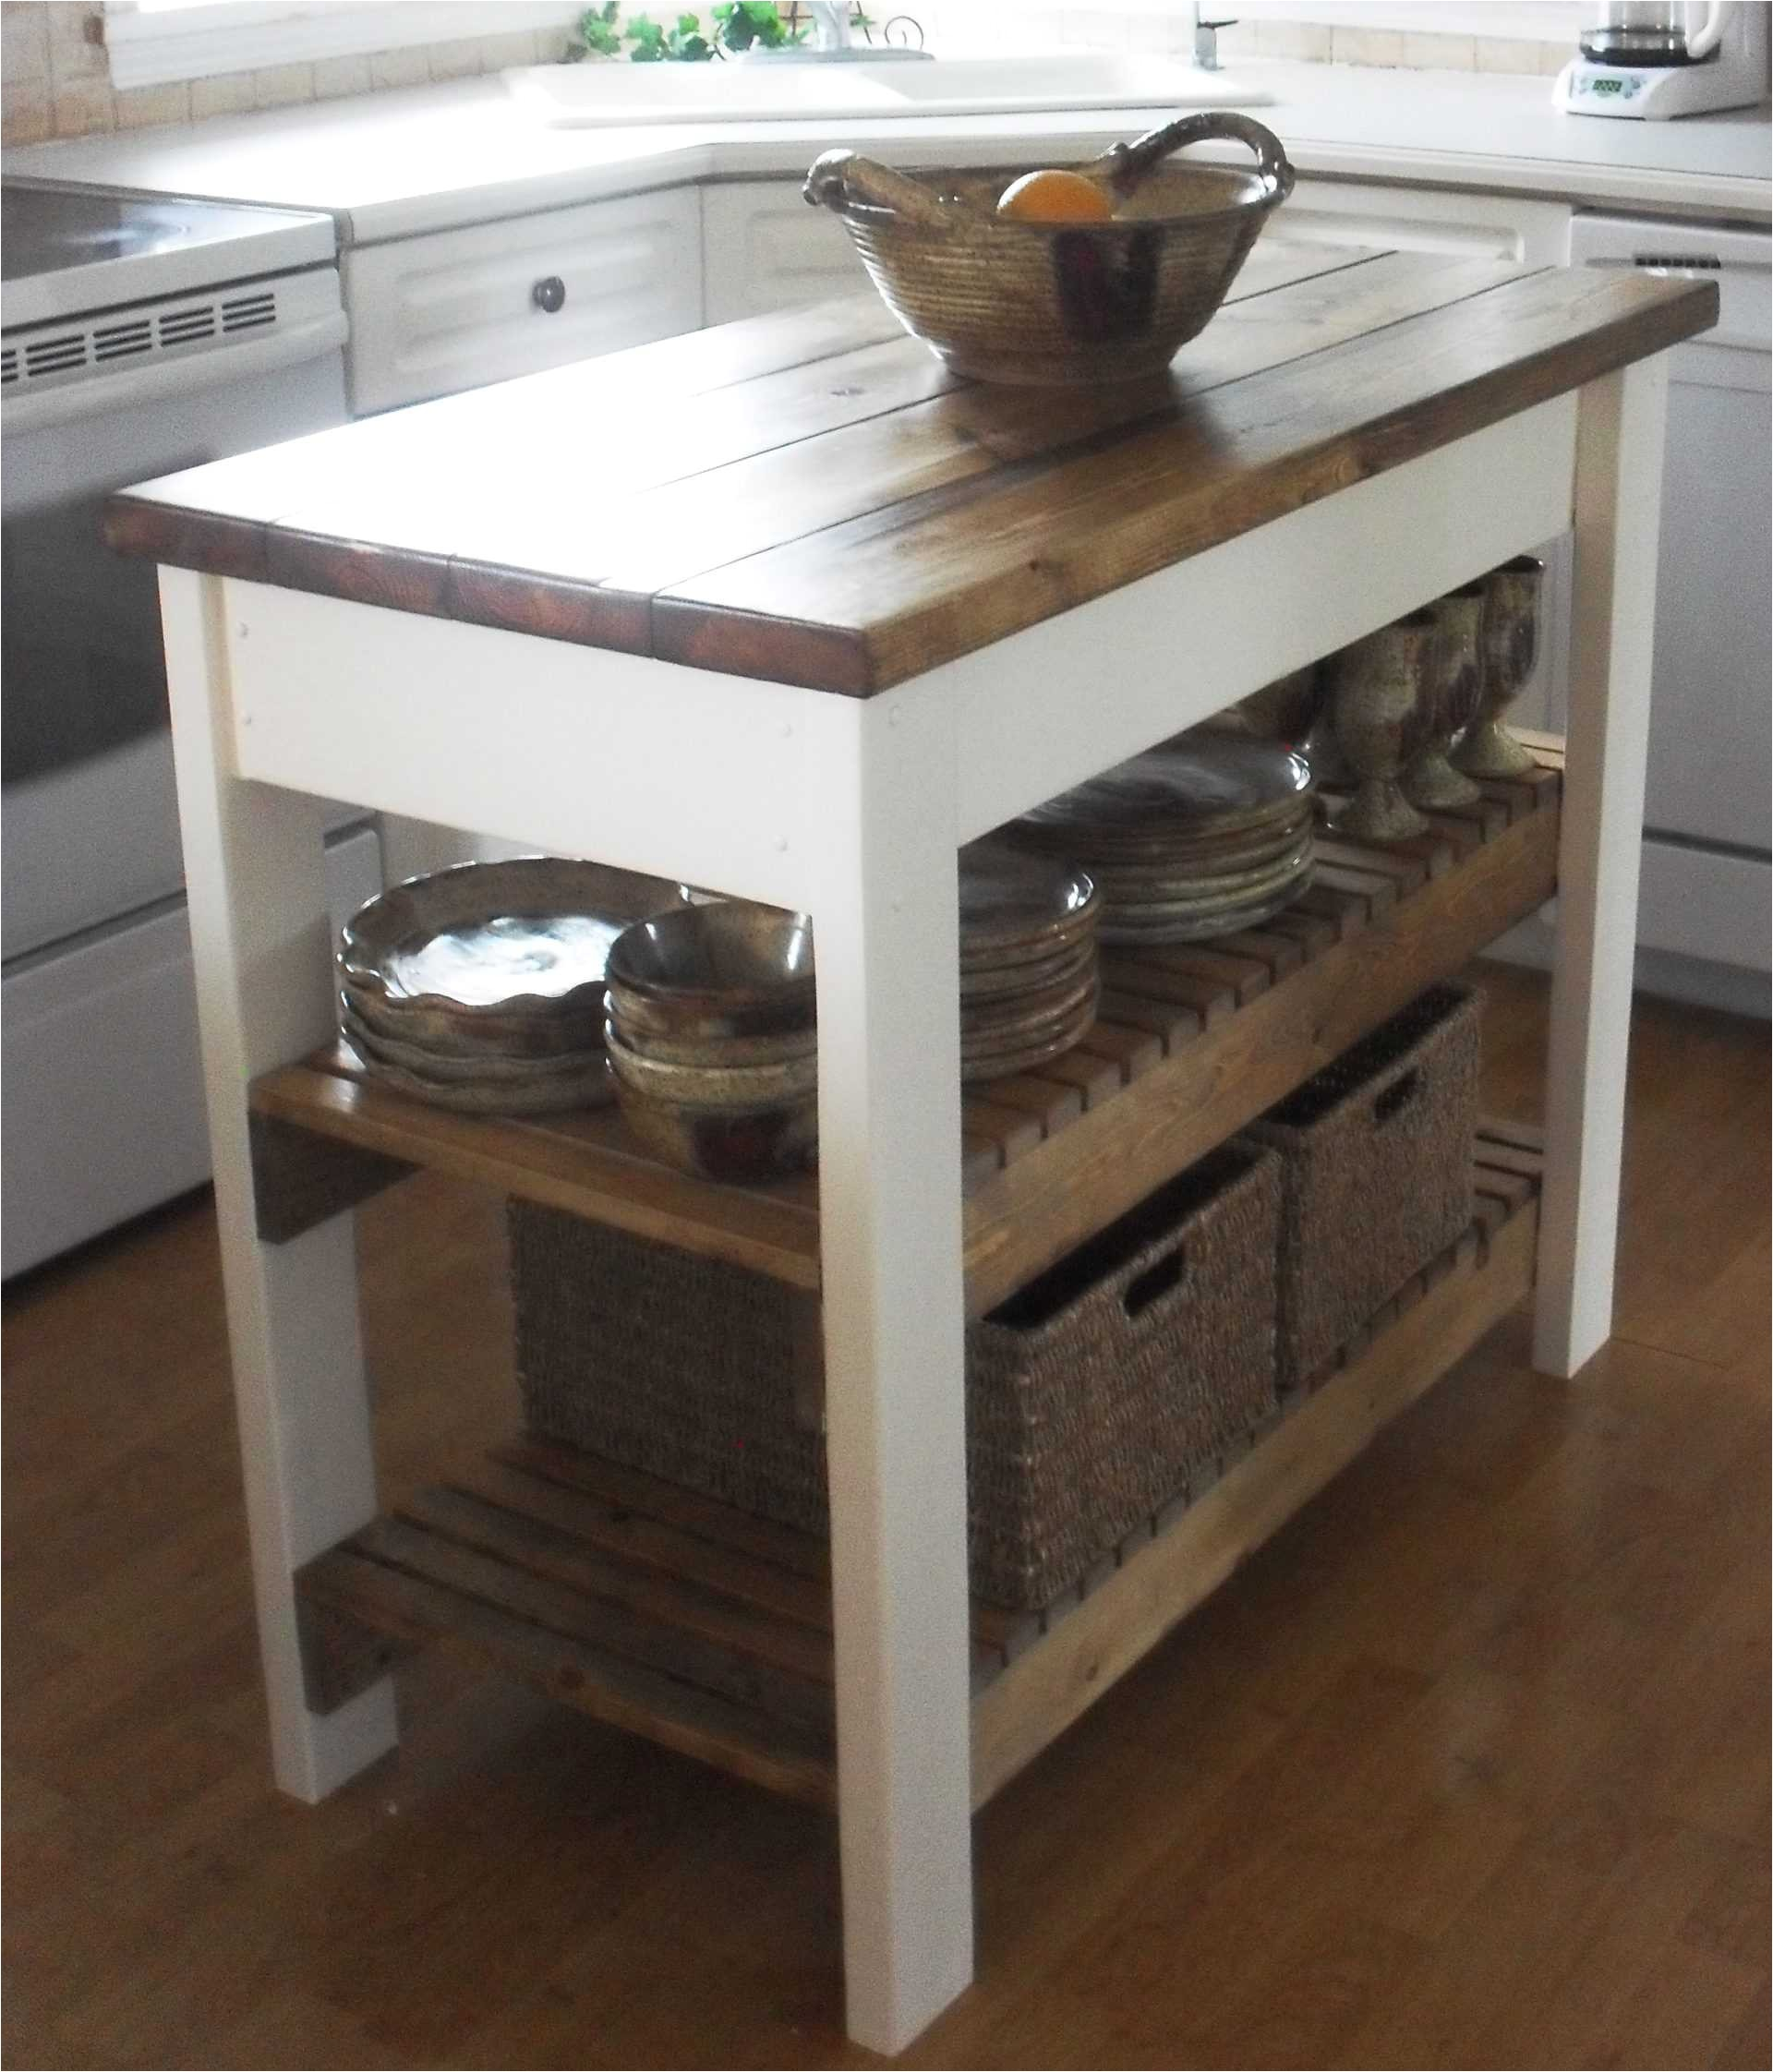 Real Simple Rolling Kitchen island In White 36.5 Enchanting Real Simple Rolling Kitchen island In White